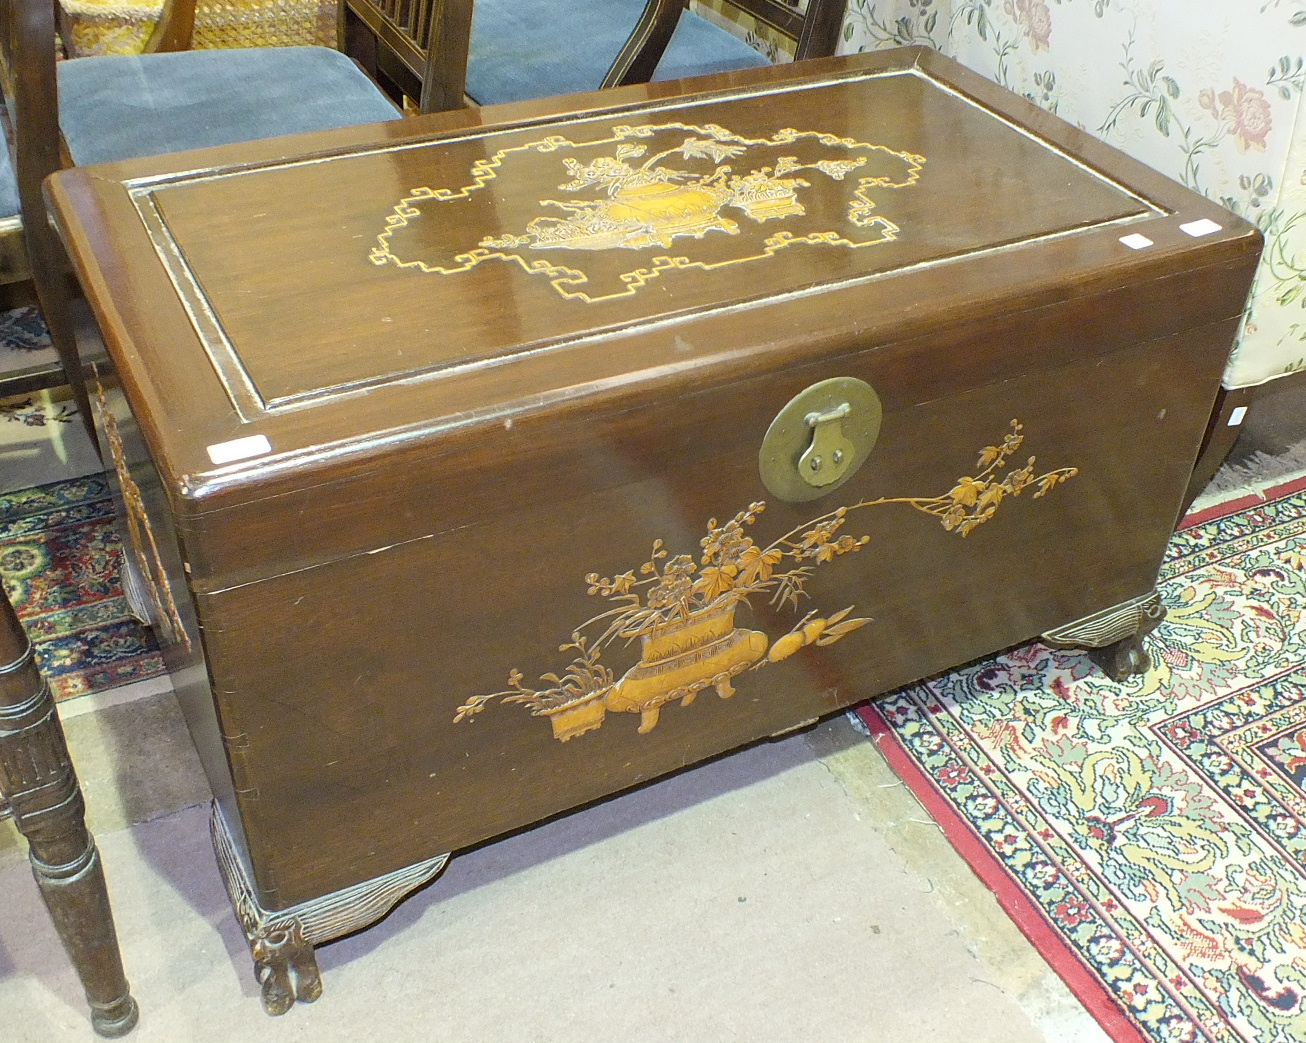 Lot 27 - A mid-20th century camphor wood chest with carved sides and lid depicting vases of flowers, 100cm